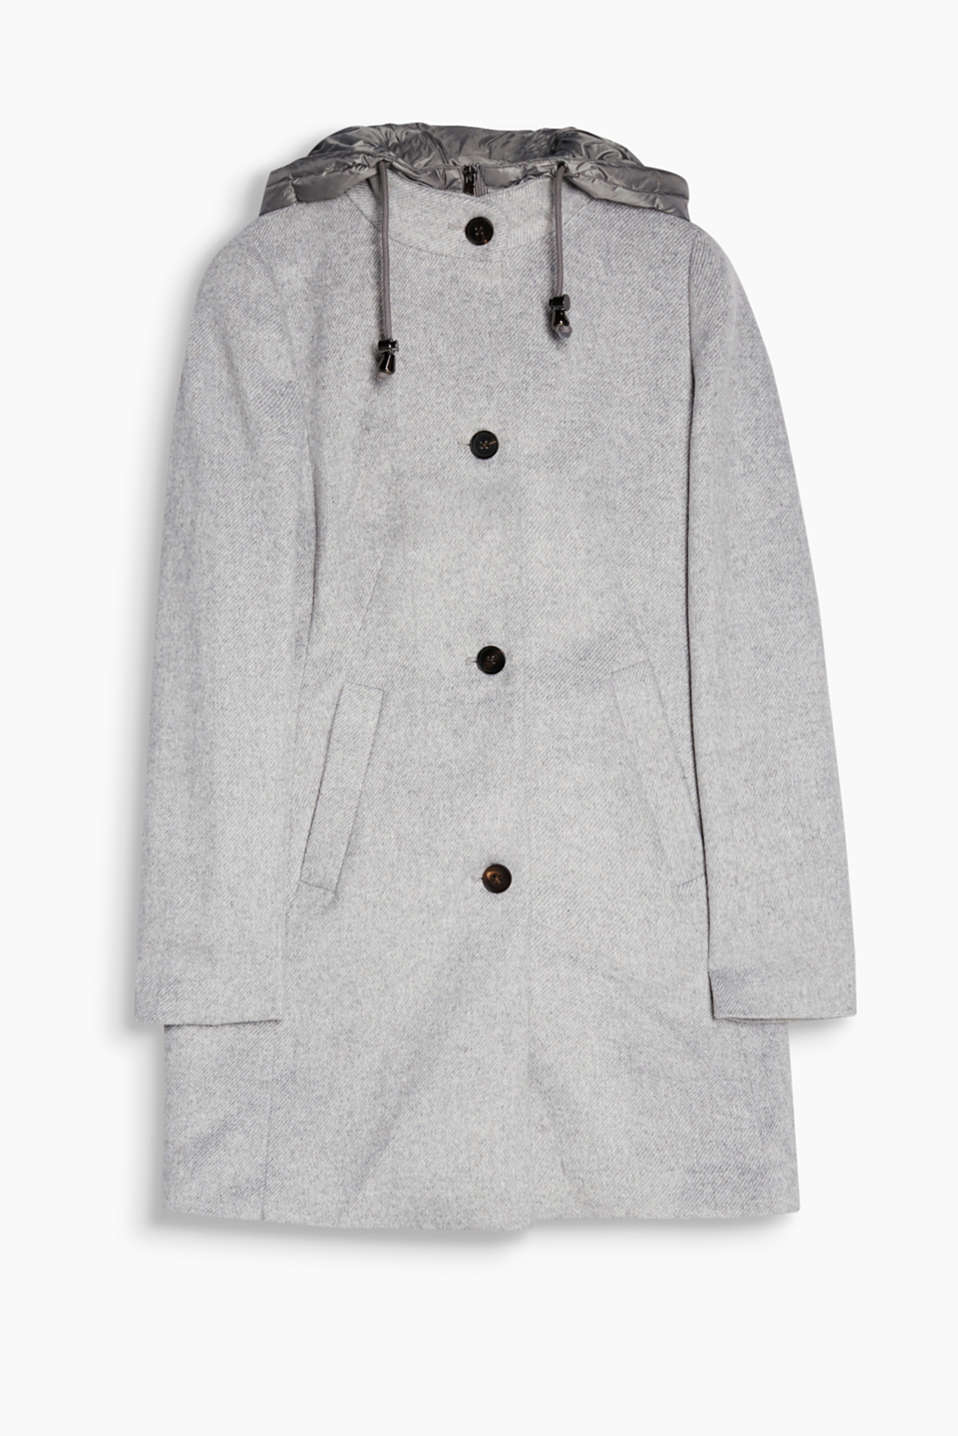 An attached hood and front section filled with down give this soft blended wool coat its new look!